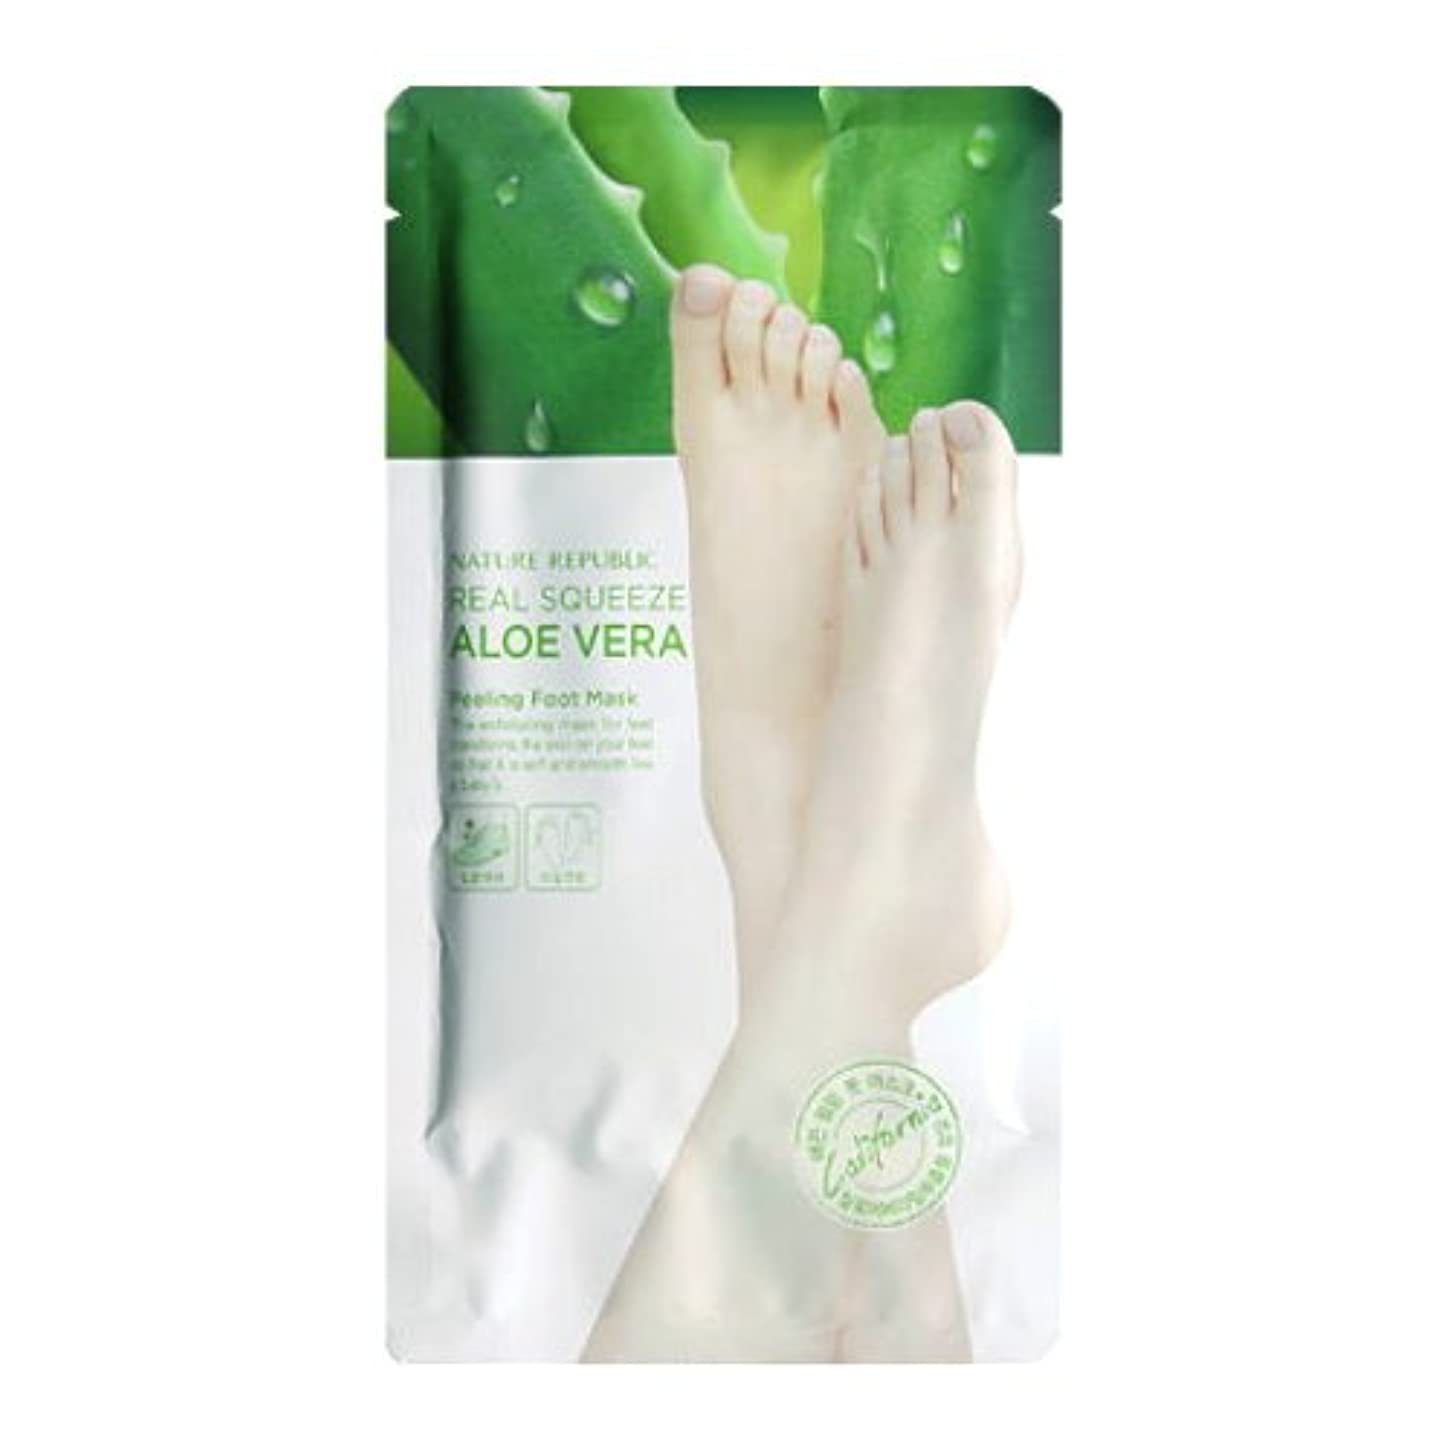 第二雄弁な地域のNATURE REPUBLIC Real Squeeze Aloe Vera Peeling Foot Mask (並行輸入品)